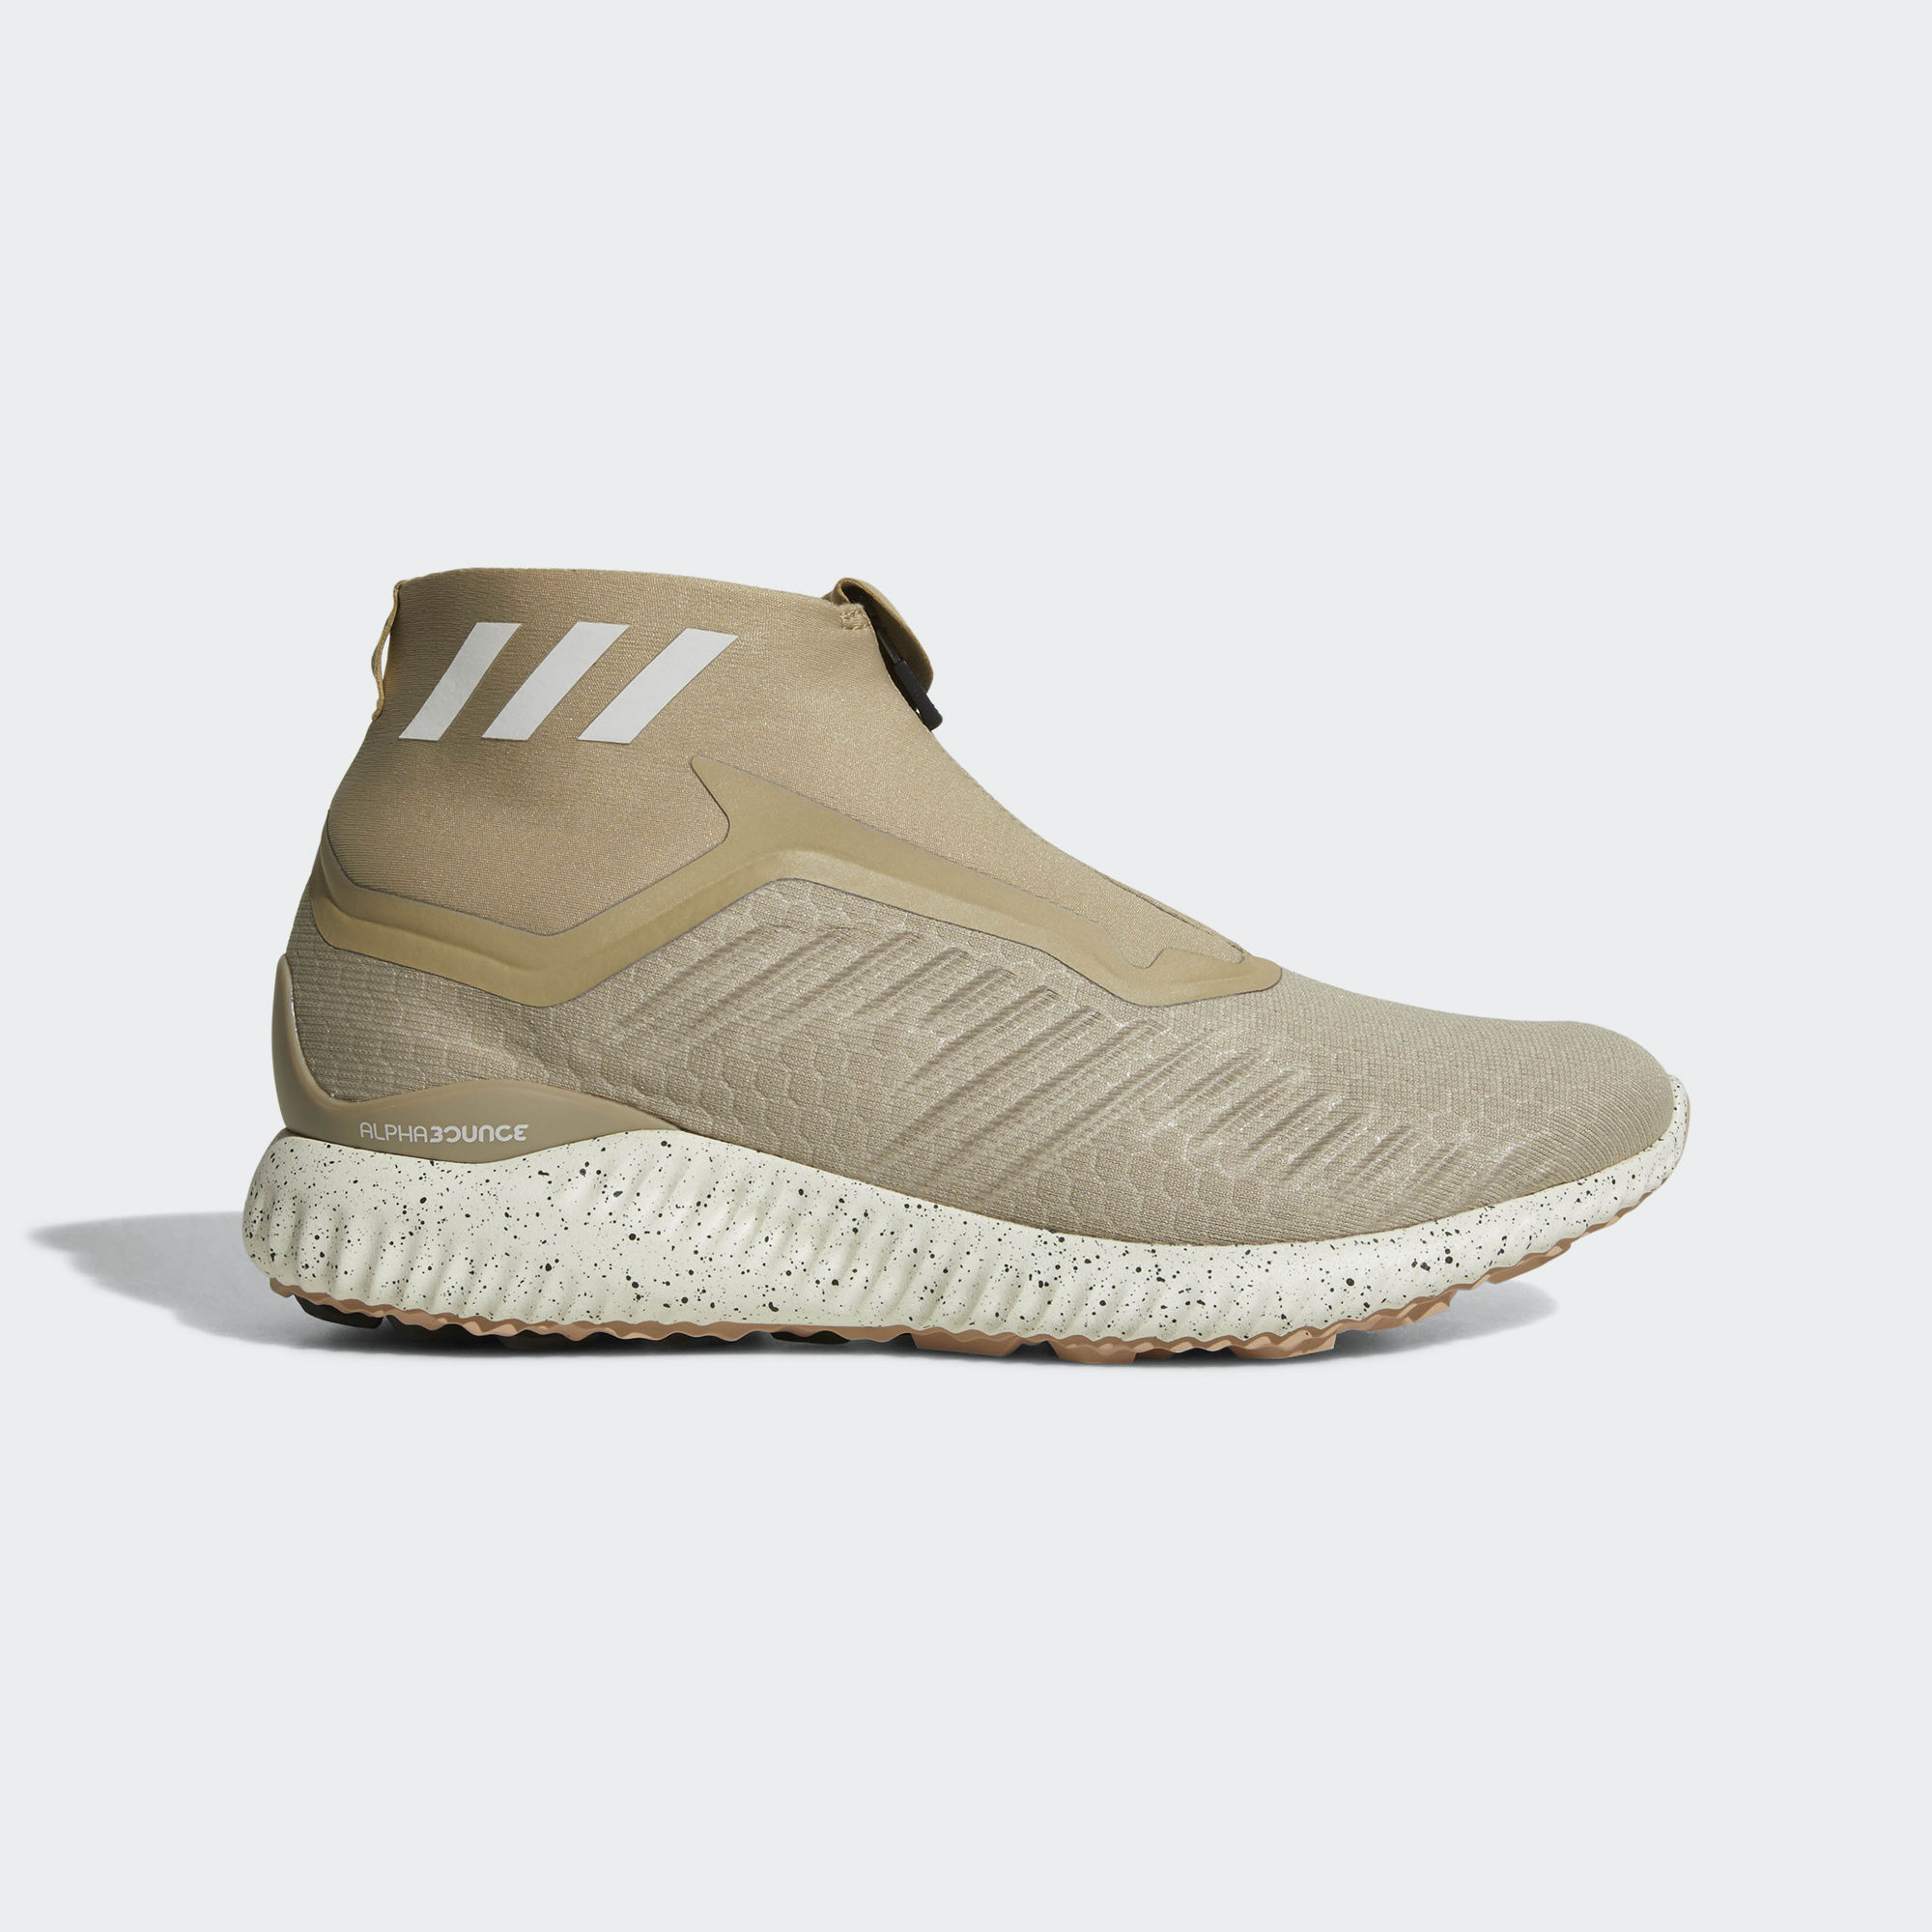 new product 91519 2c35a Кроссовки для бега Alphabounce Zip M DA9949 adidas Performance - Украина   ONETEAM.COM.UA